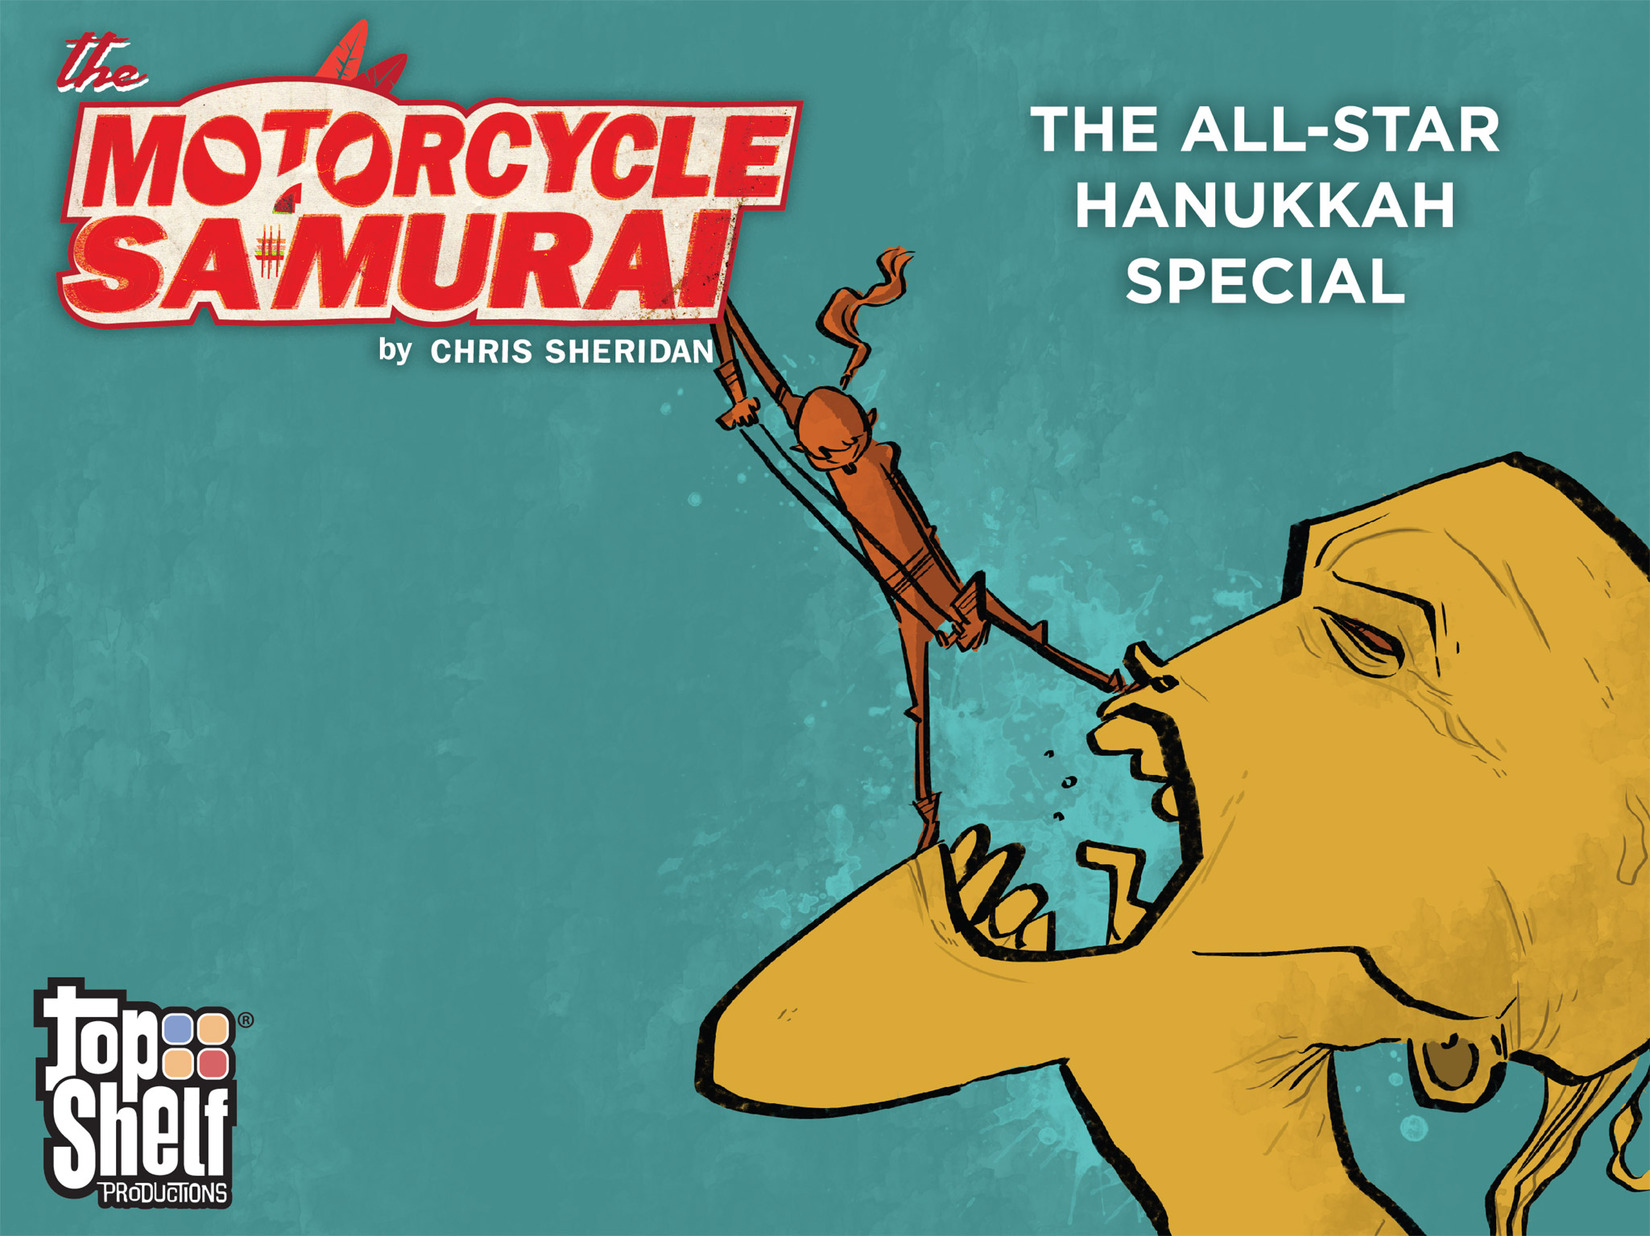 The Motorcycle Samurai: The All-Star Hanukkah Special Full Page 1